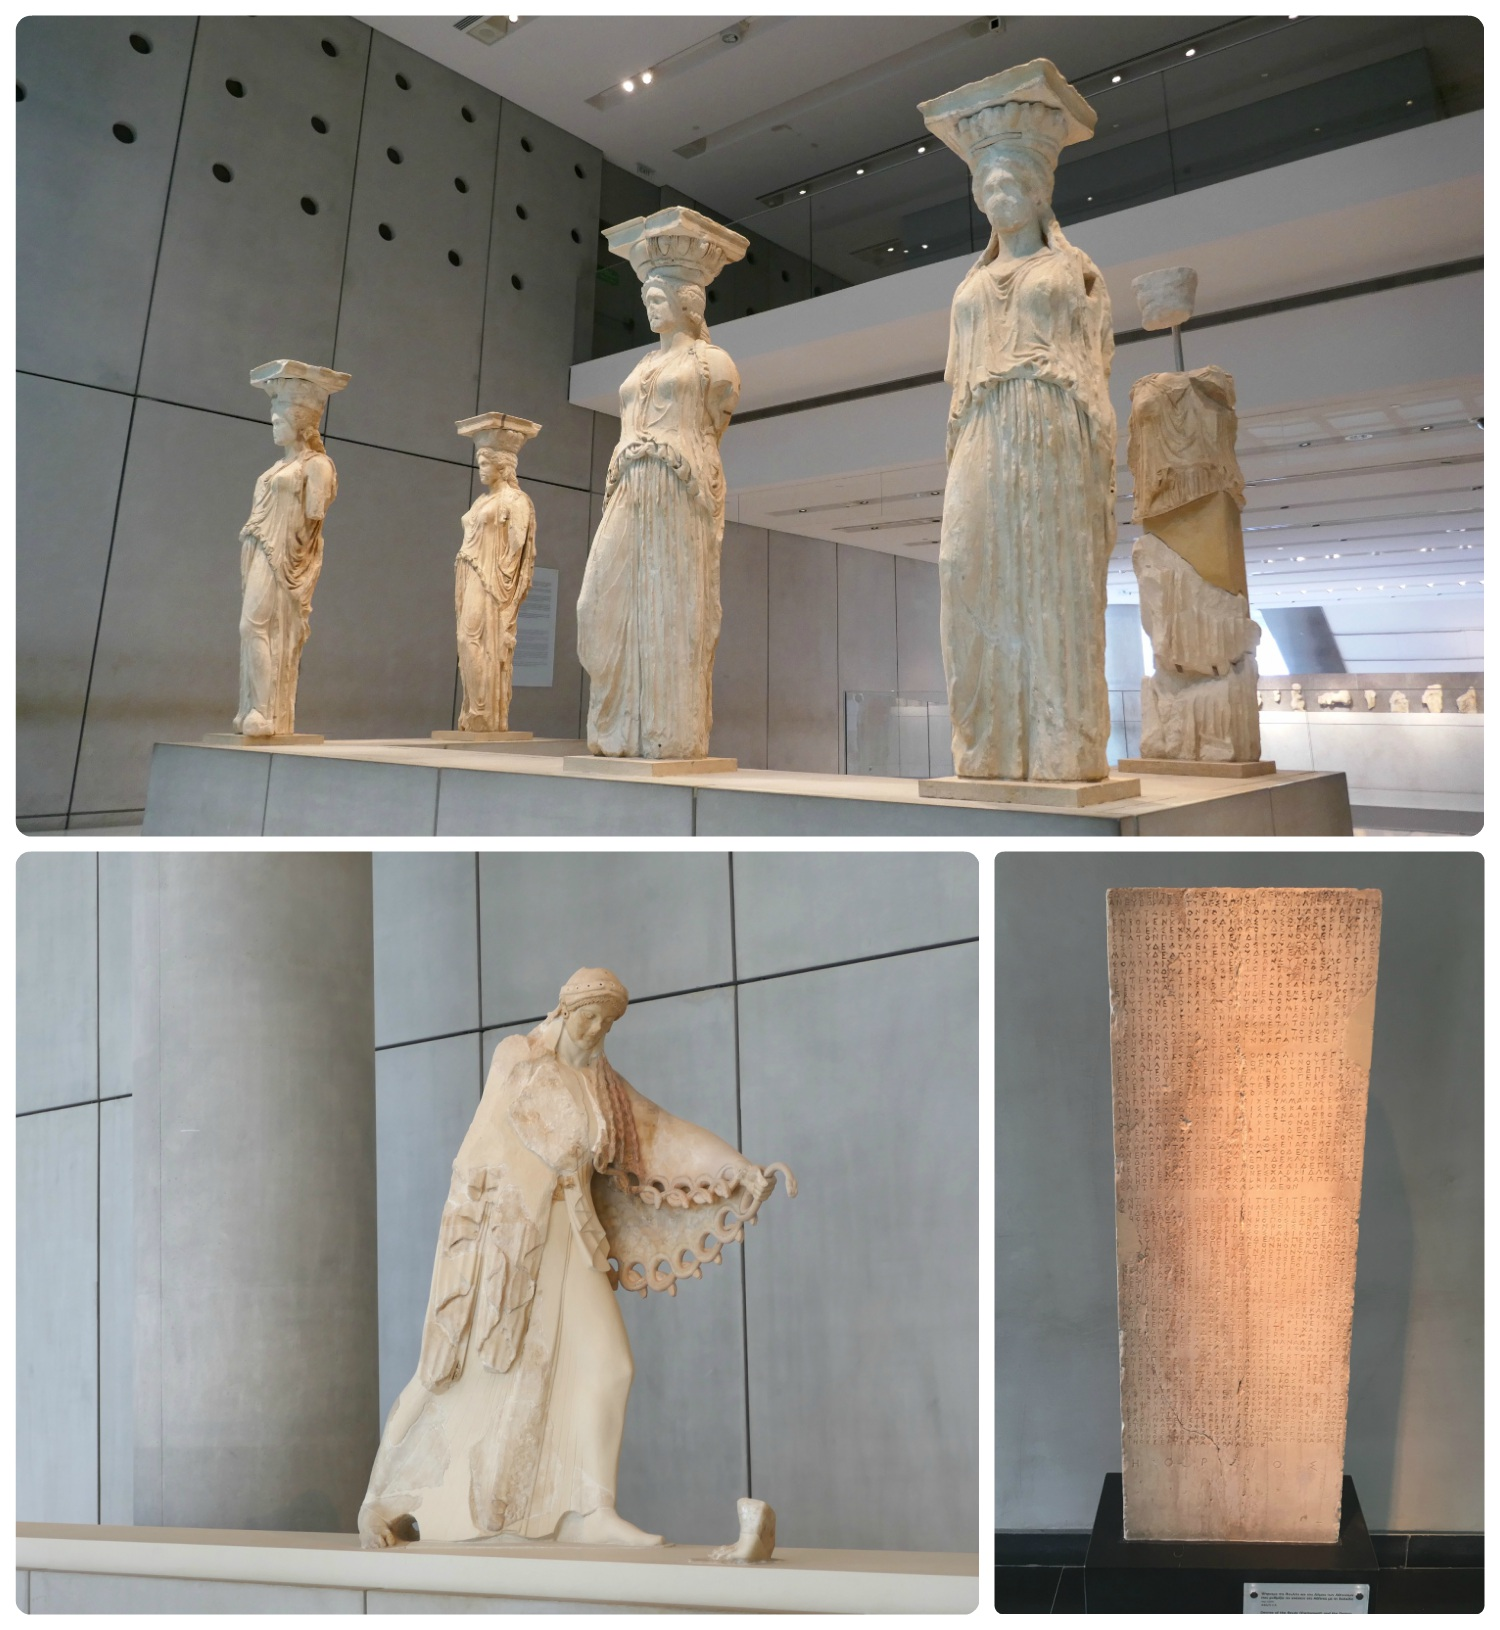 Artifacts displayed at the Acropolis Museum Athens. Clockwise (from the top): Five of the six original caryatids from the Maidens Porch (on the Erechtheion within the Athens Acropolis) are elegantly displayed in the center of the museum, the Decree of the Boule (Parliament) and the Demos of the Athenians regulating the relations of Athens with Chalkis dated 446/5 BCE,Colossal Statue of Athena dated 525 BCE.